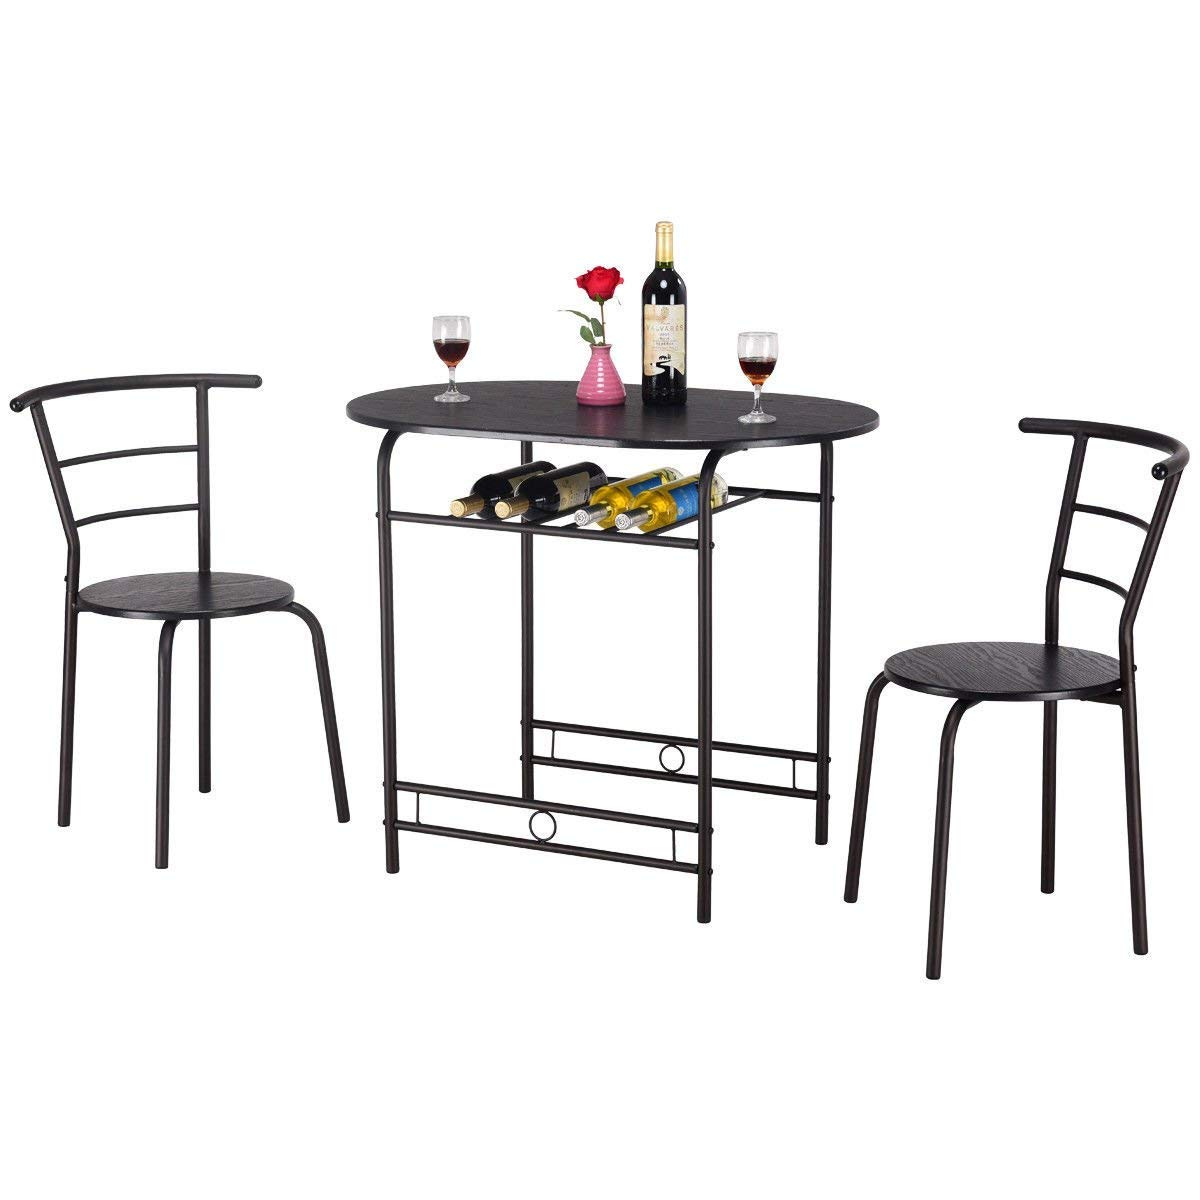 Casart 3 PCS Dining Table and 2 Chairs Set Home Kitchen Breakfast Pub Dining Furniture Set